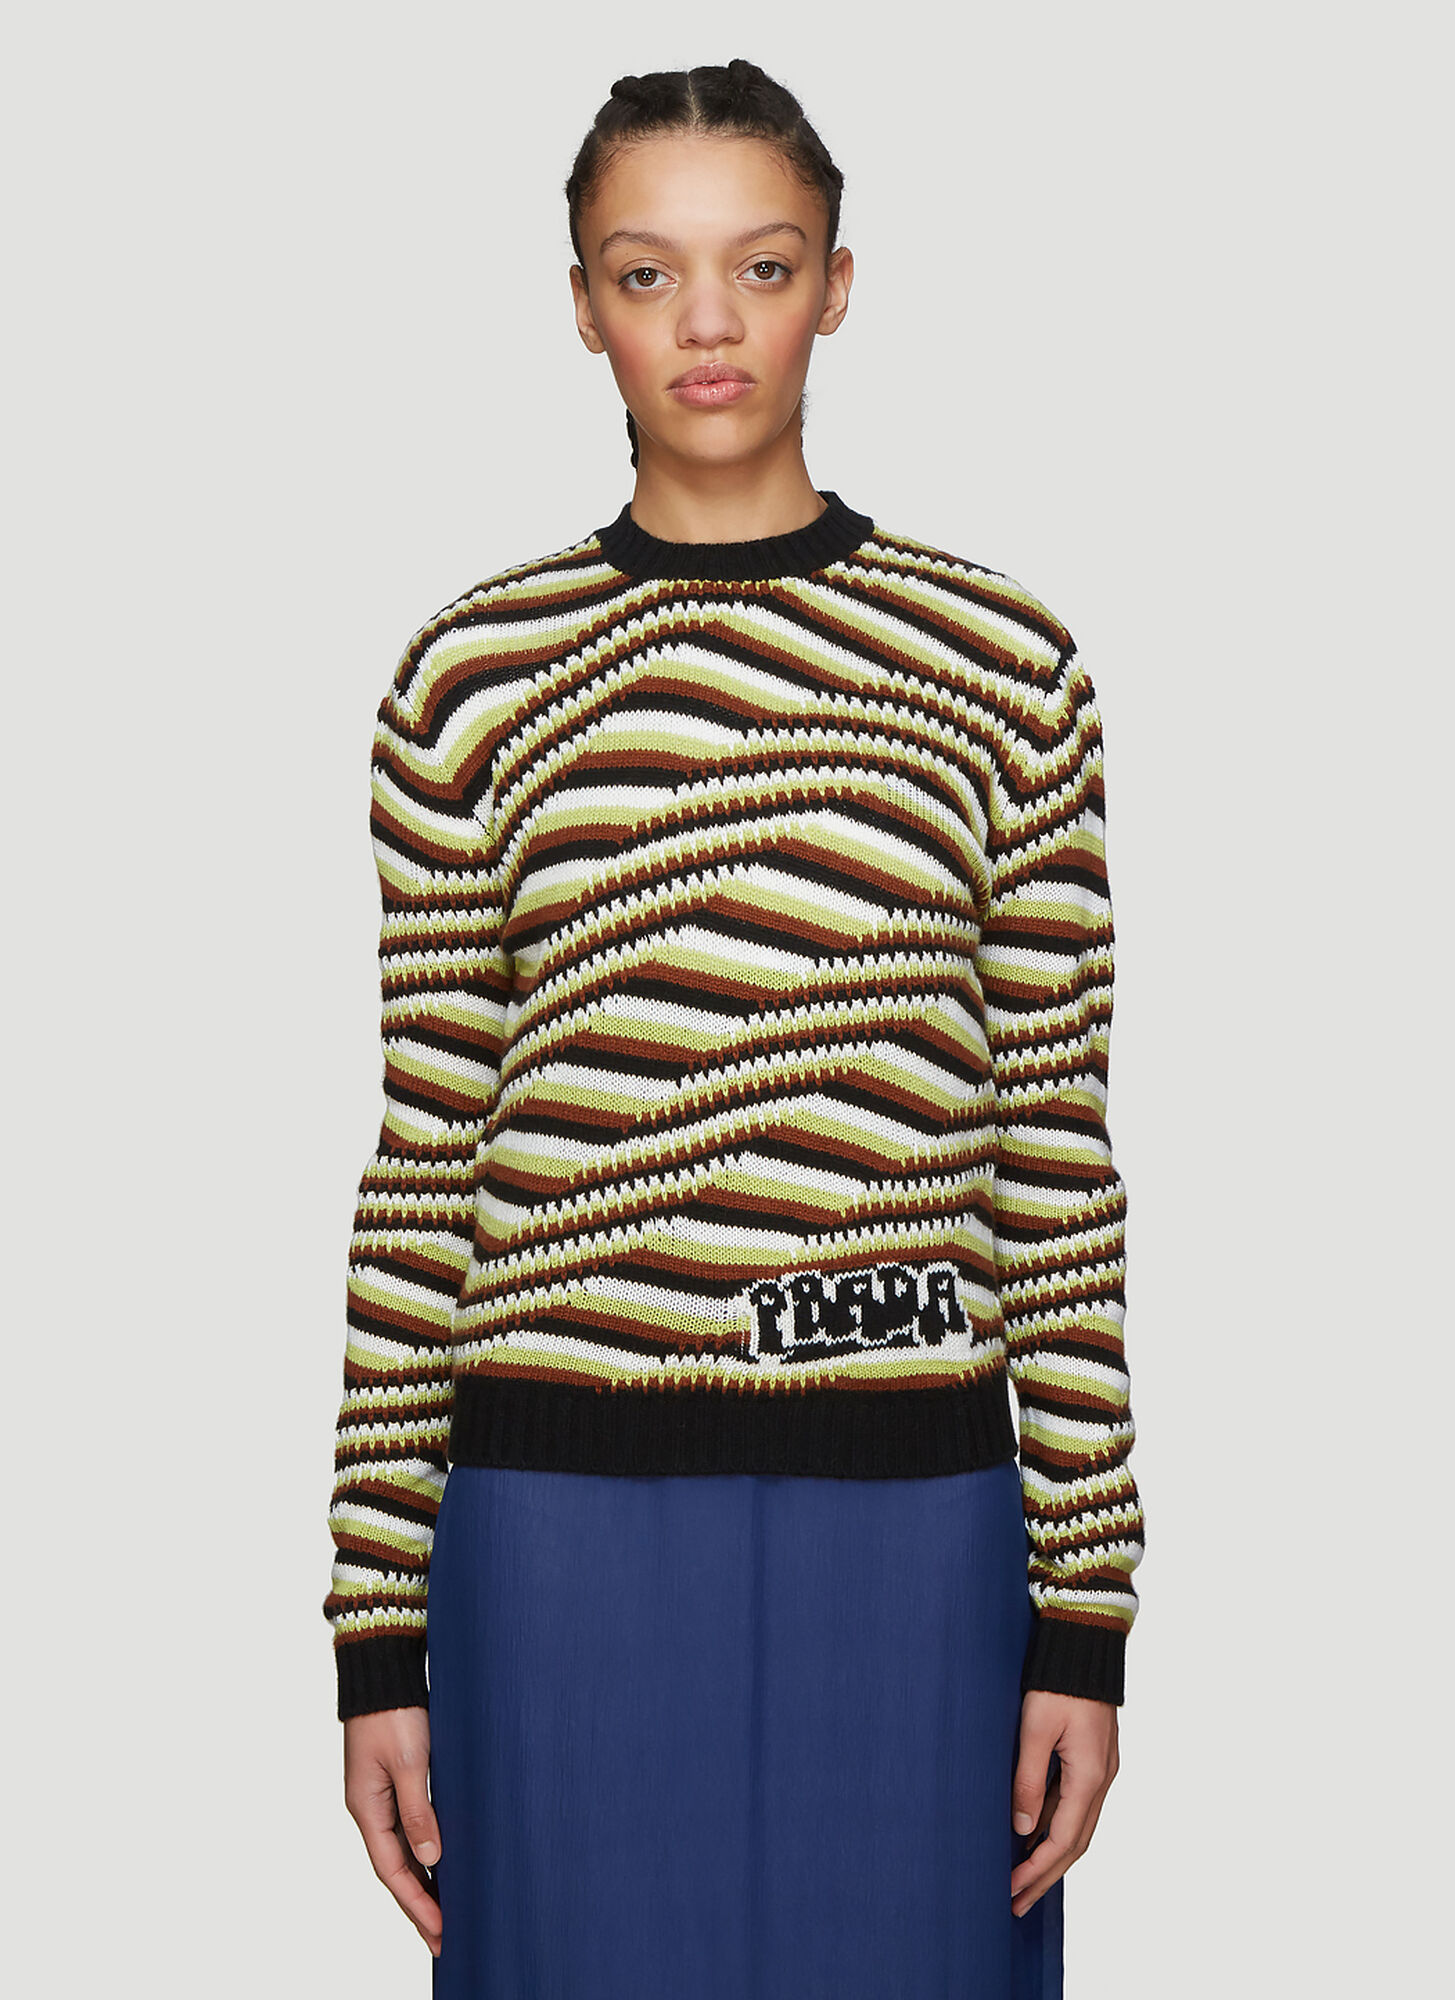 Prada Striped Cashmere Sweater in Brown